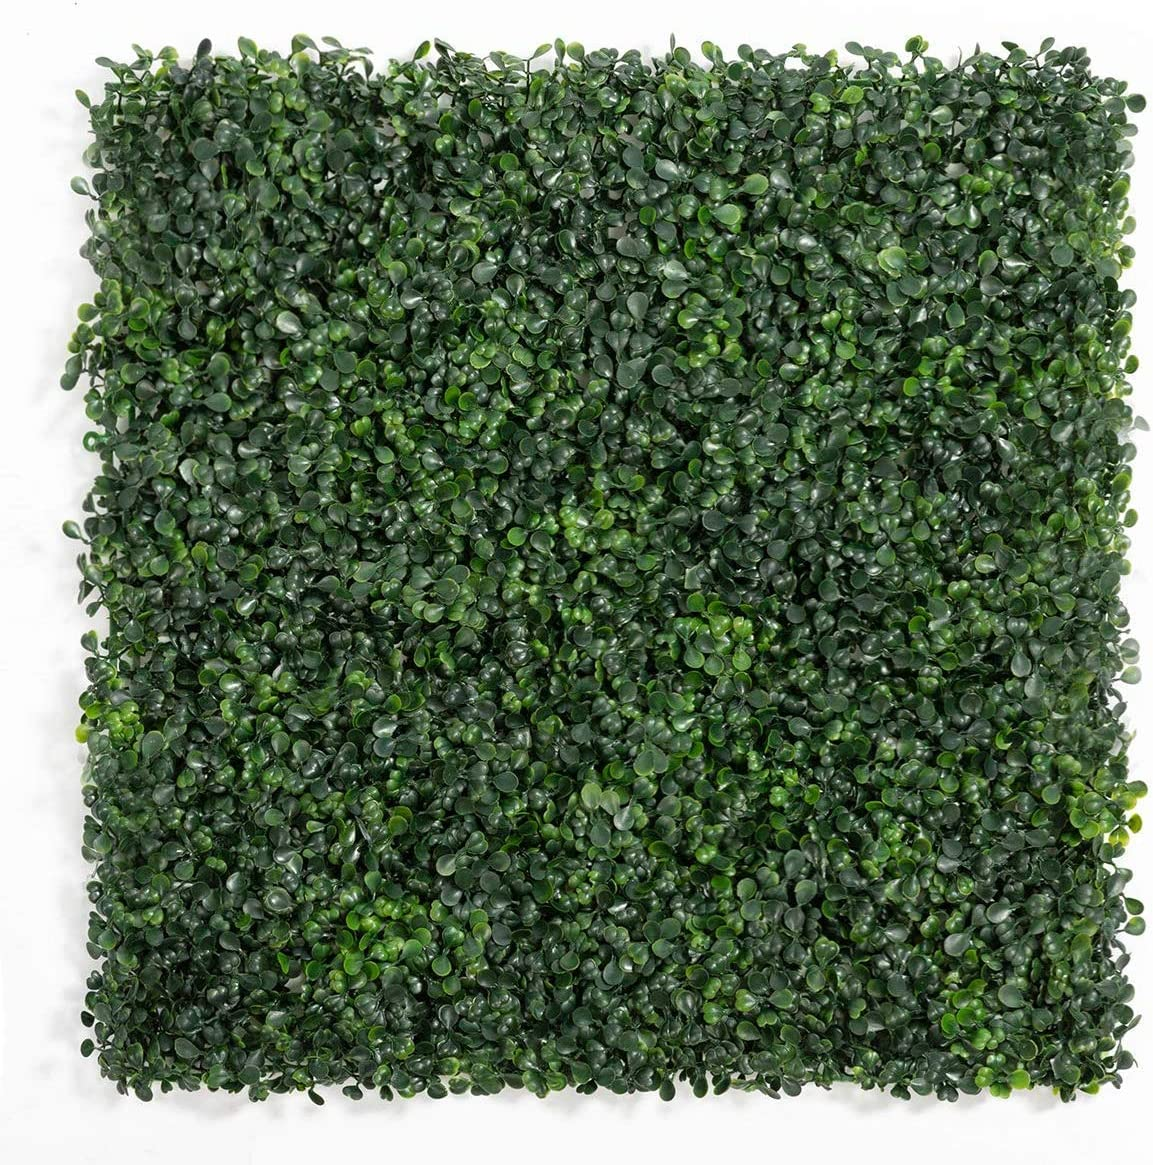 "DOEWORKS Artificial Boxwood Hedges Panels, 20"" x 20"" Faux Plant Ivy Fence Wall Cover, Outdoor Privacy Fence Screening Garden Decoration - 12 Pack"